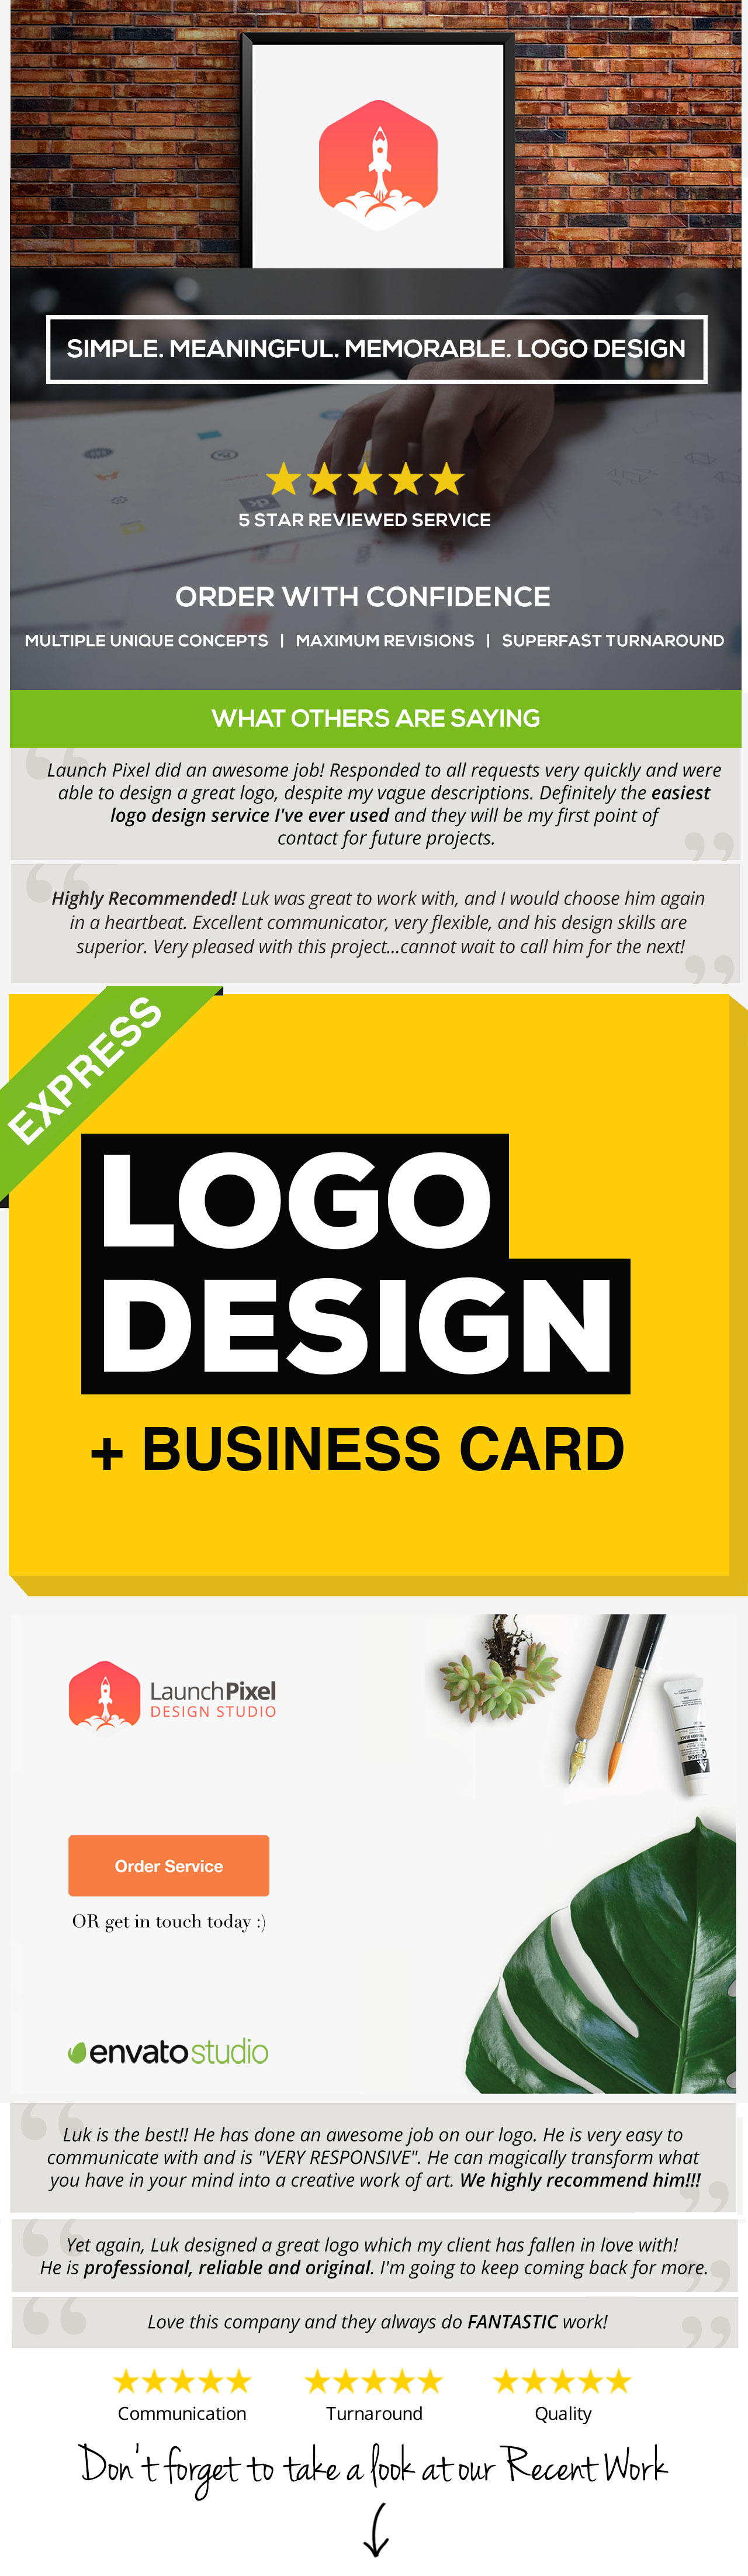 Logo Design by launchpixel - 107782